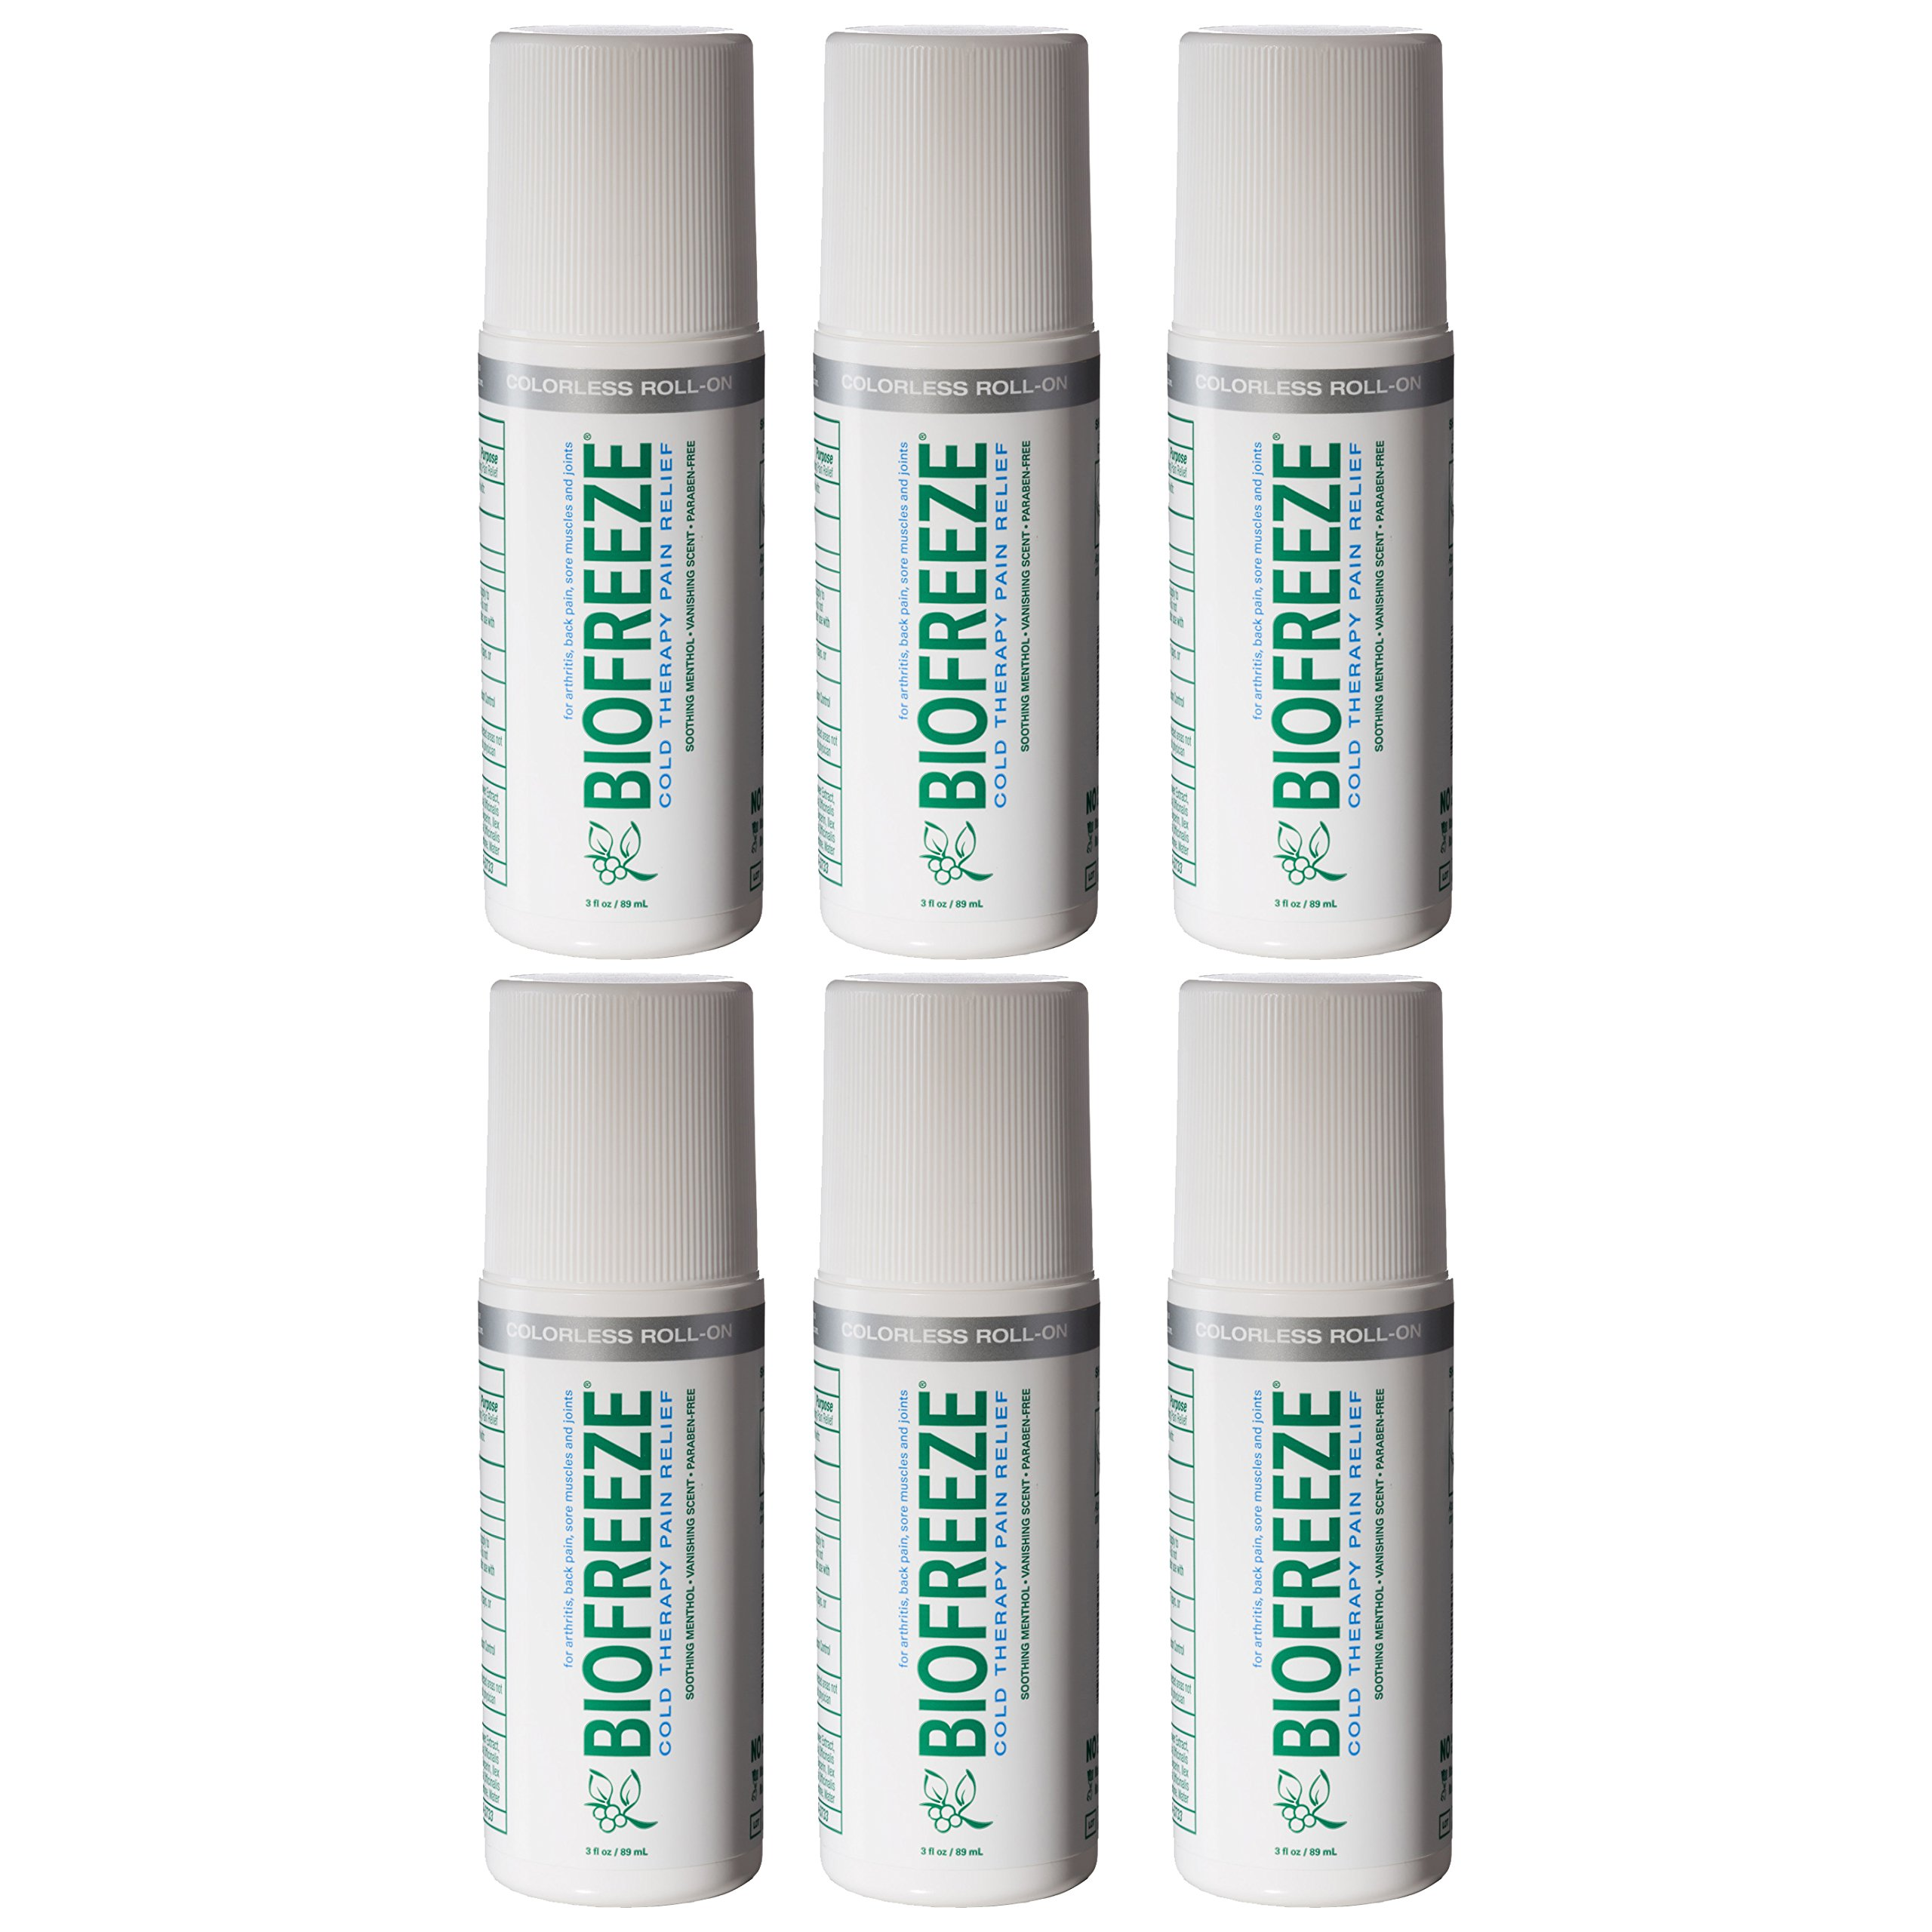 Biofreeze Pain Relief Gel, 3 oz. Colorless Roll-On, Fast Acting, Long Lasting, & Powerful Topical Pain Reliever, Pack of 6 (Packaging May Vary) by Biofreeze